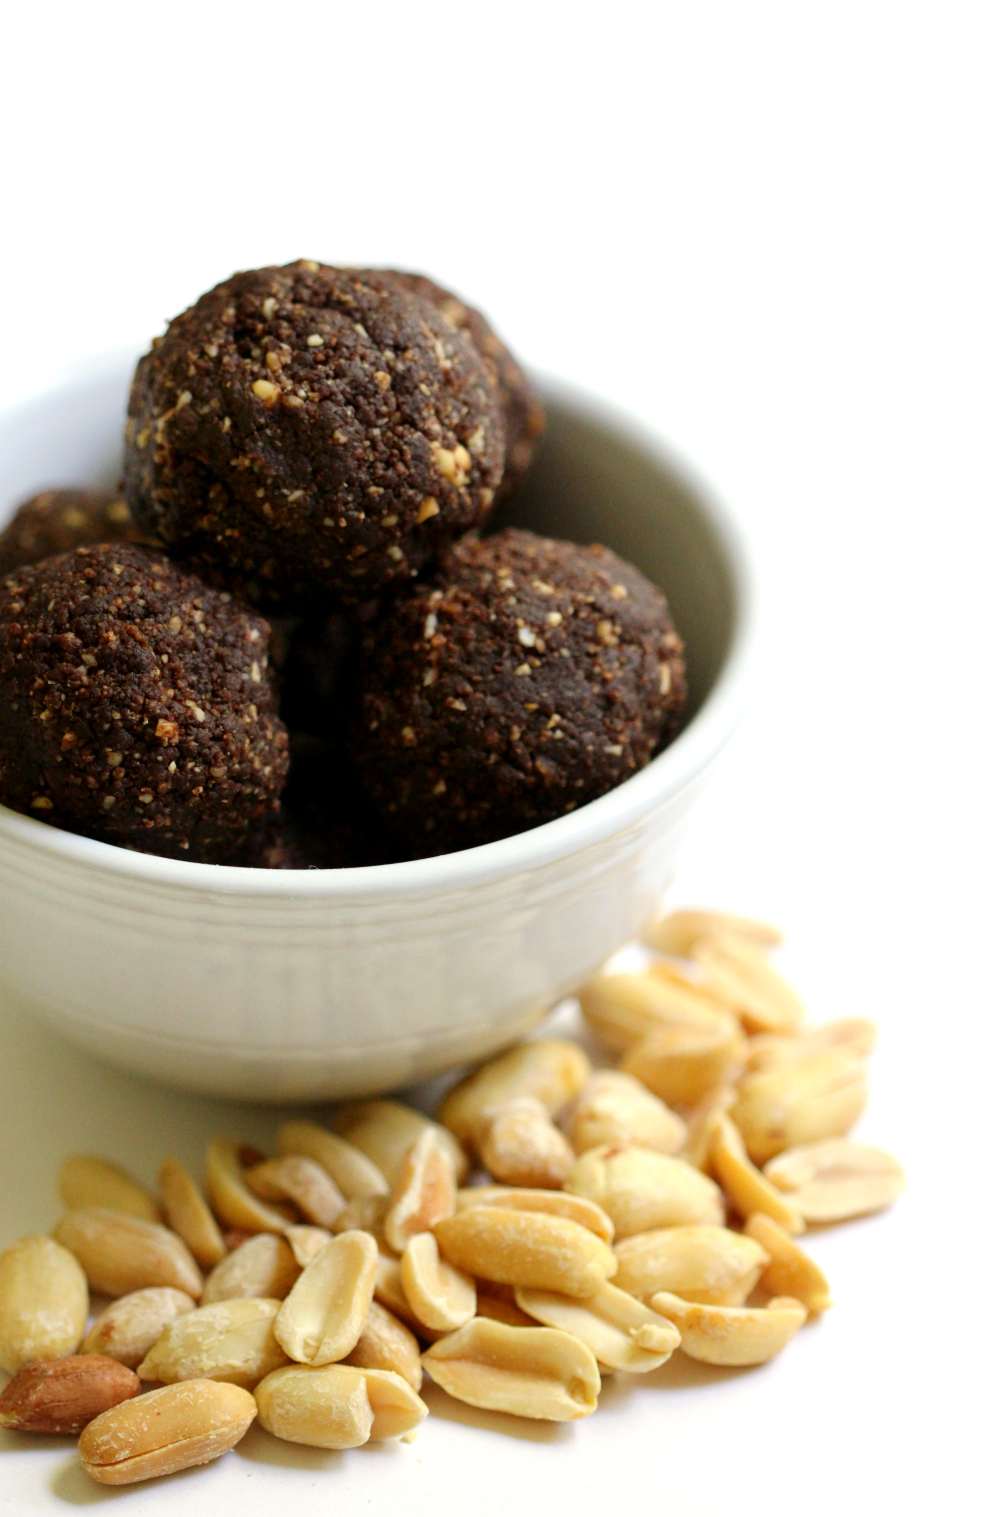 Chocolate Peanut Butter Power Balls | Strength and Sunshine @RebeccaGF666 Get your chocolate and peanut butter fix with these healthy, gluten-free, vegan, and grain-free Chocolate Peanut Butter Power Balls! A yummy protein-packed snack recipe for all ages and bite sizes!